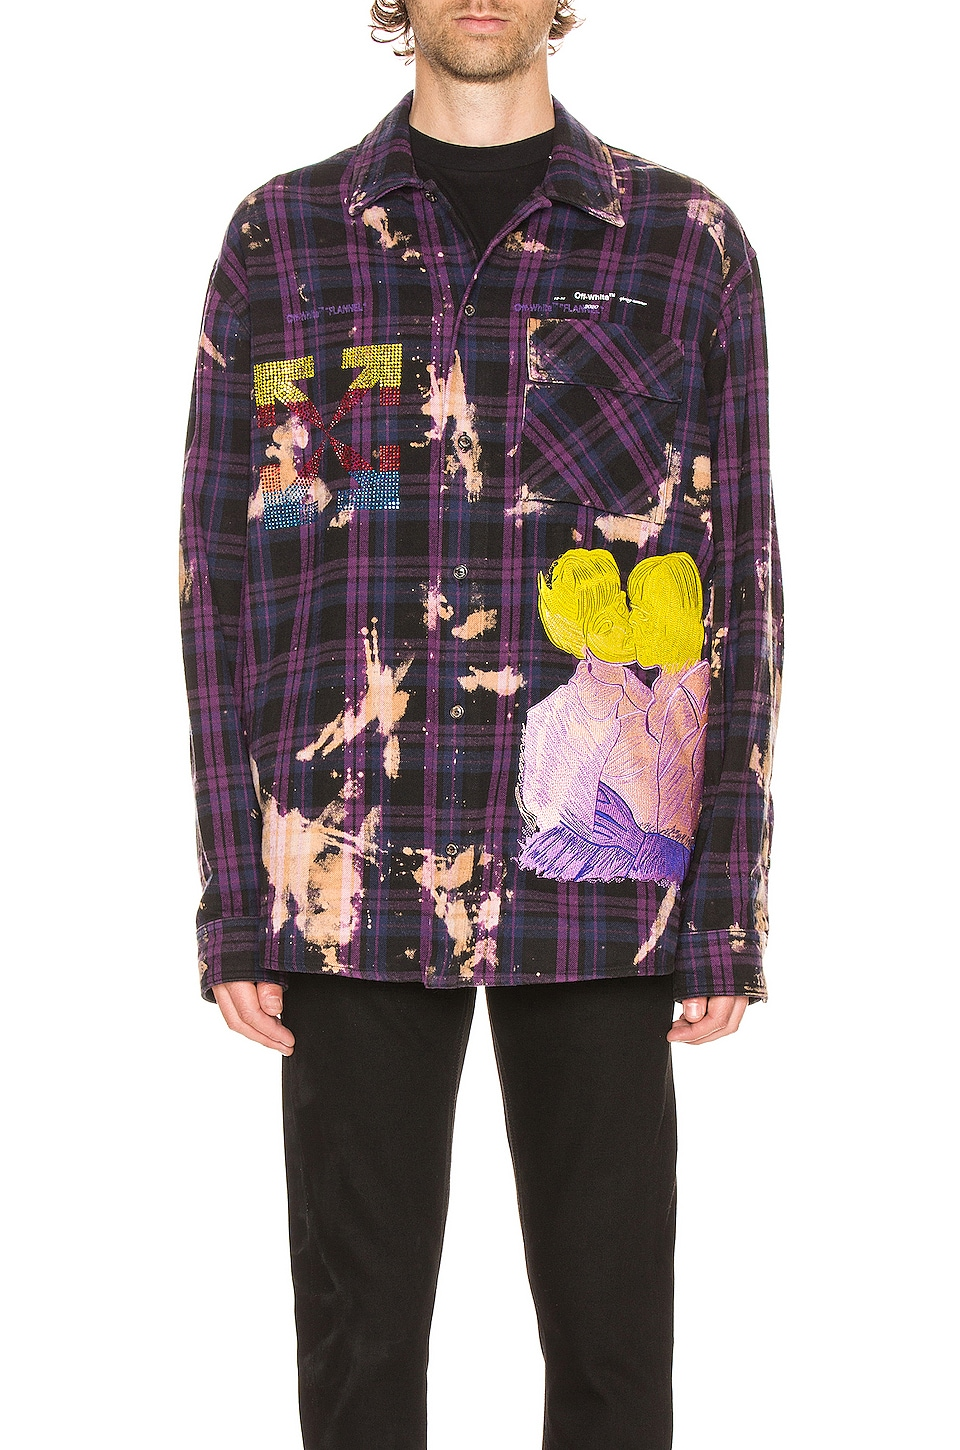 OFF-WHITE Flannel Check Shirt in Violet